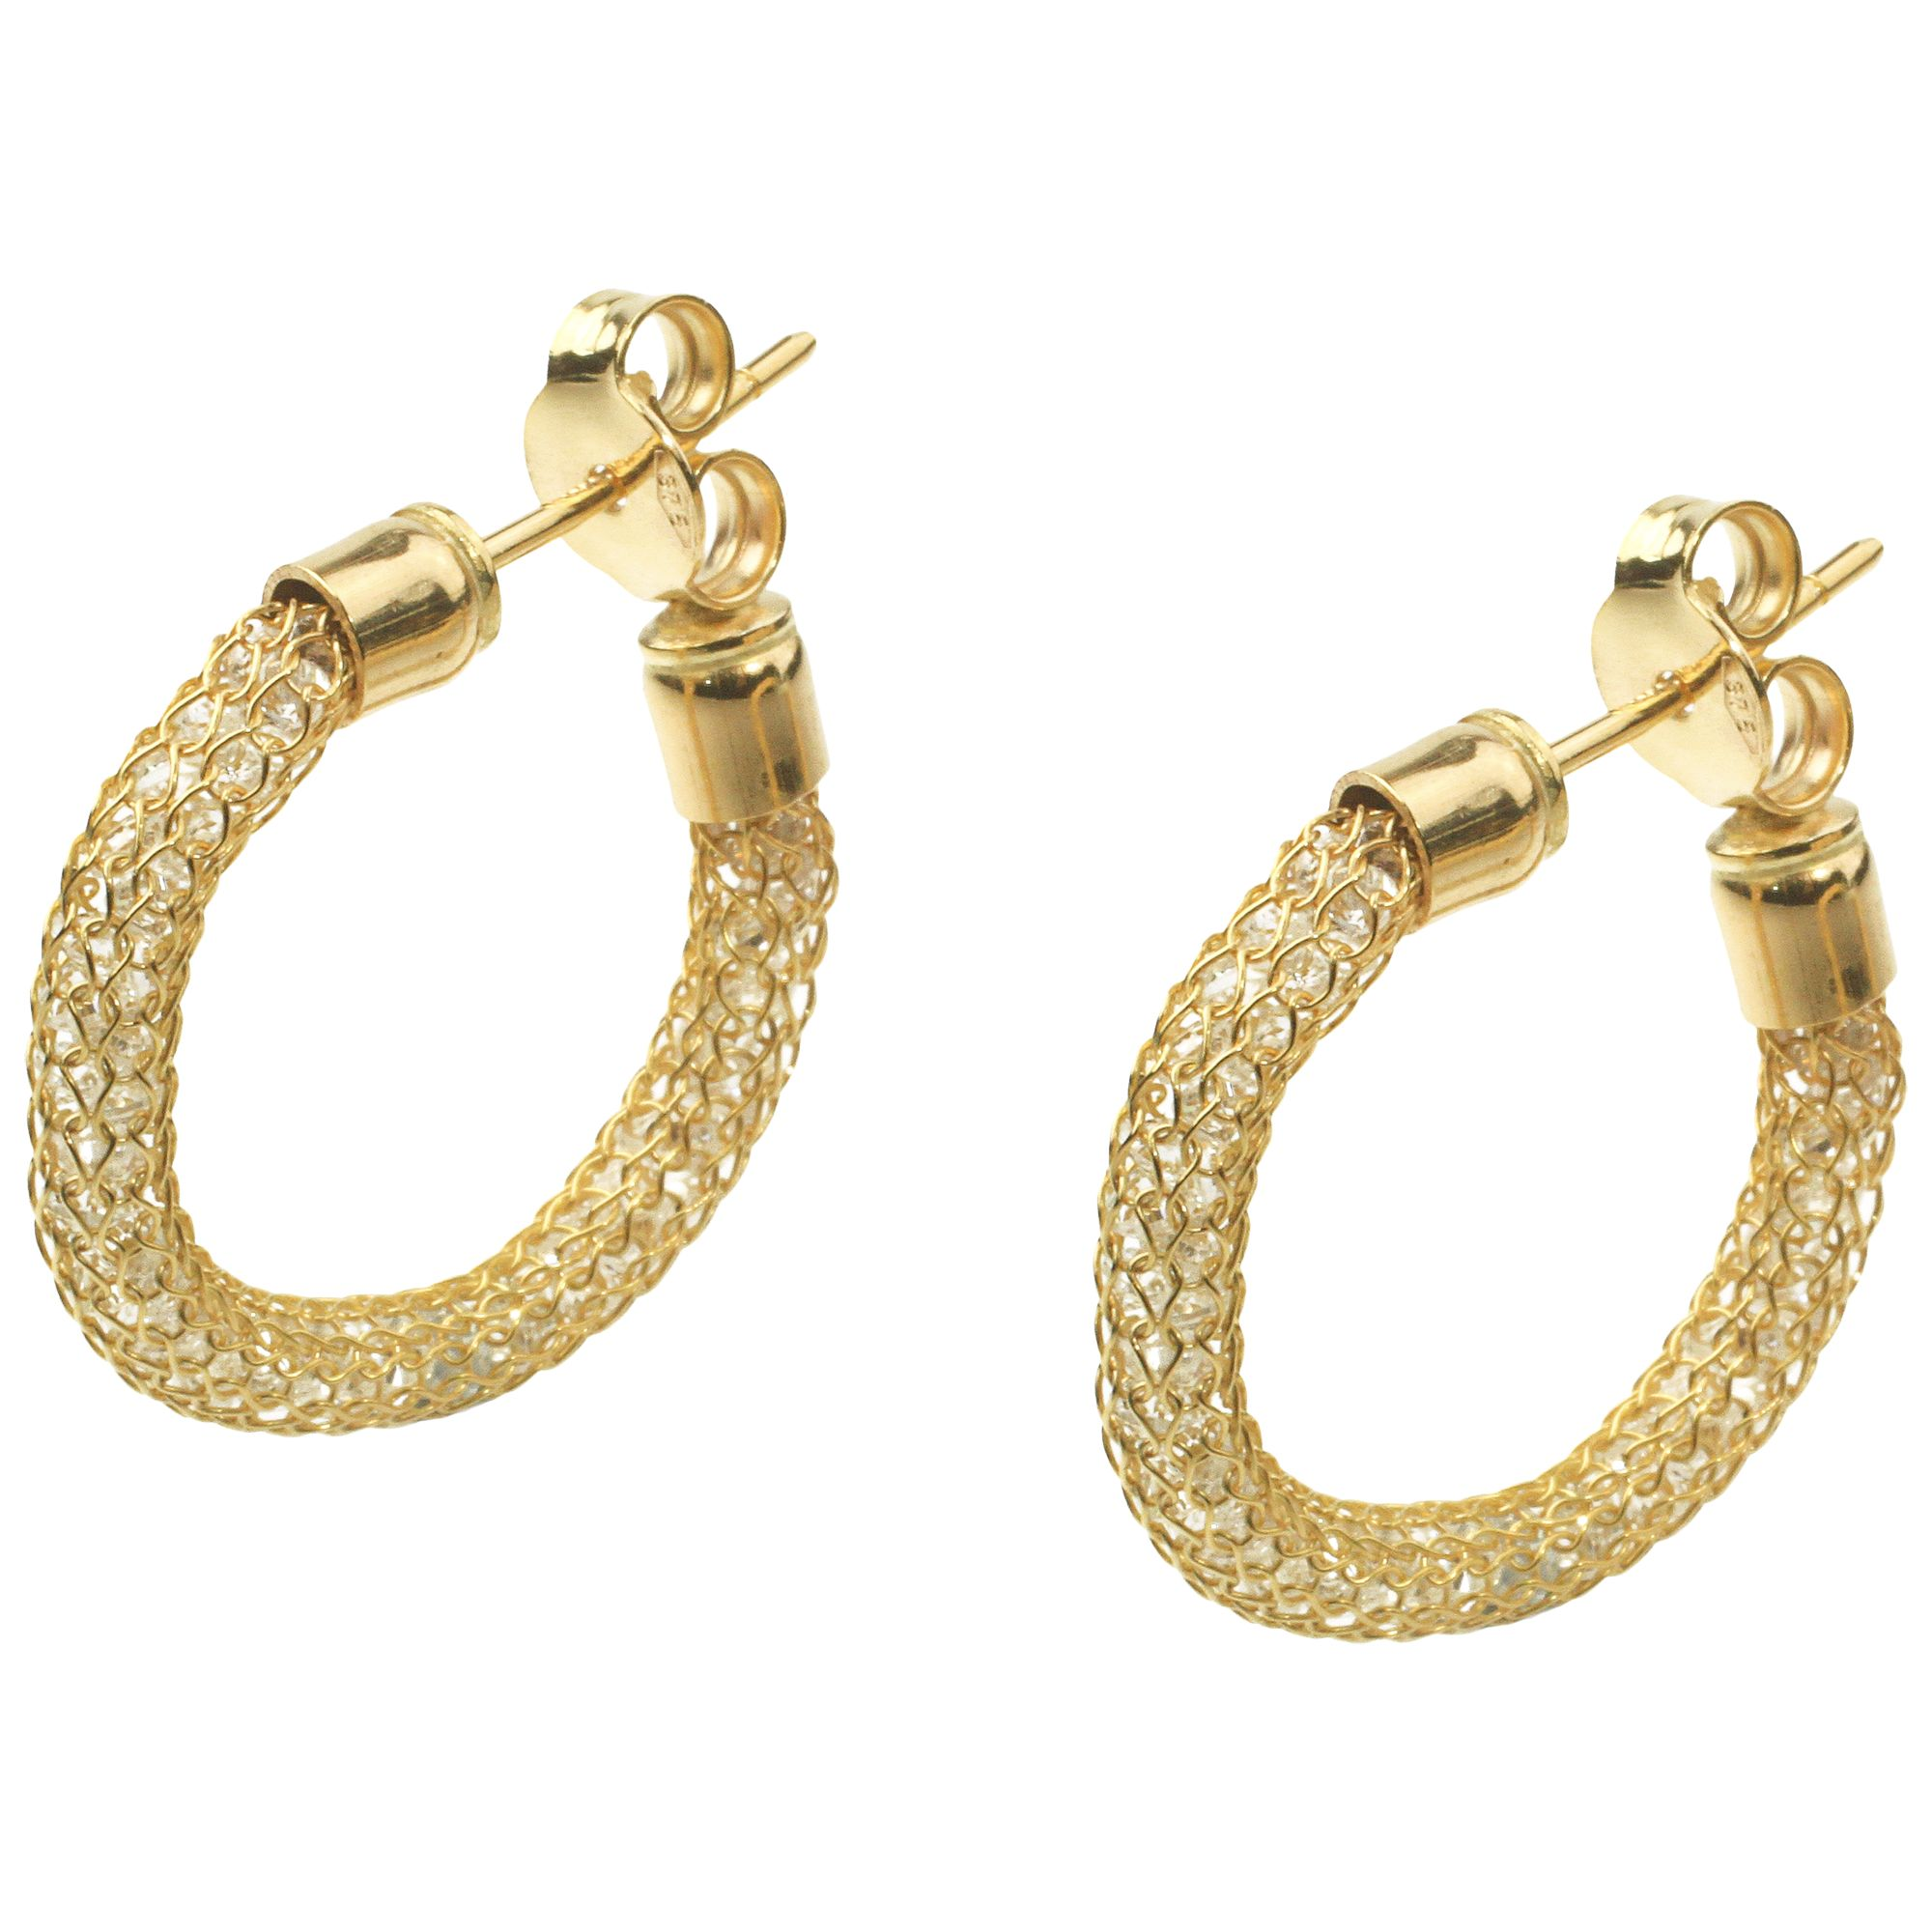 cheap gold earrings gold earrings shop for cheap s jewellery and save 3338